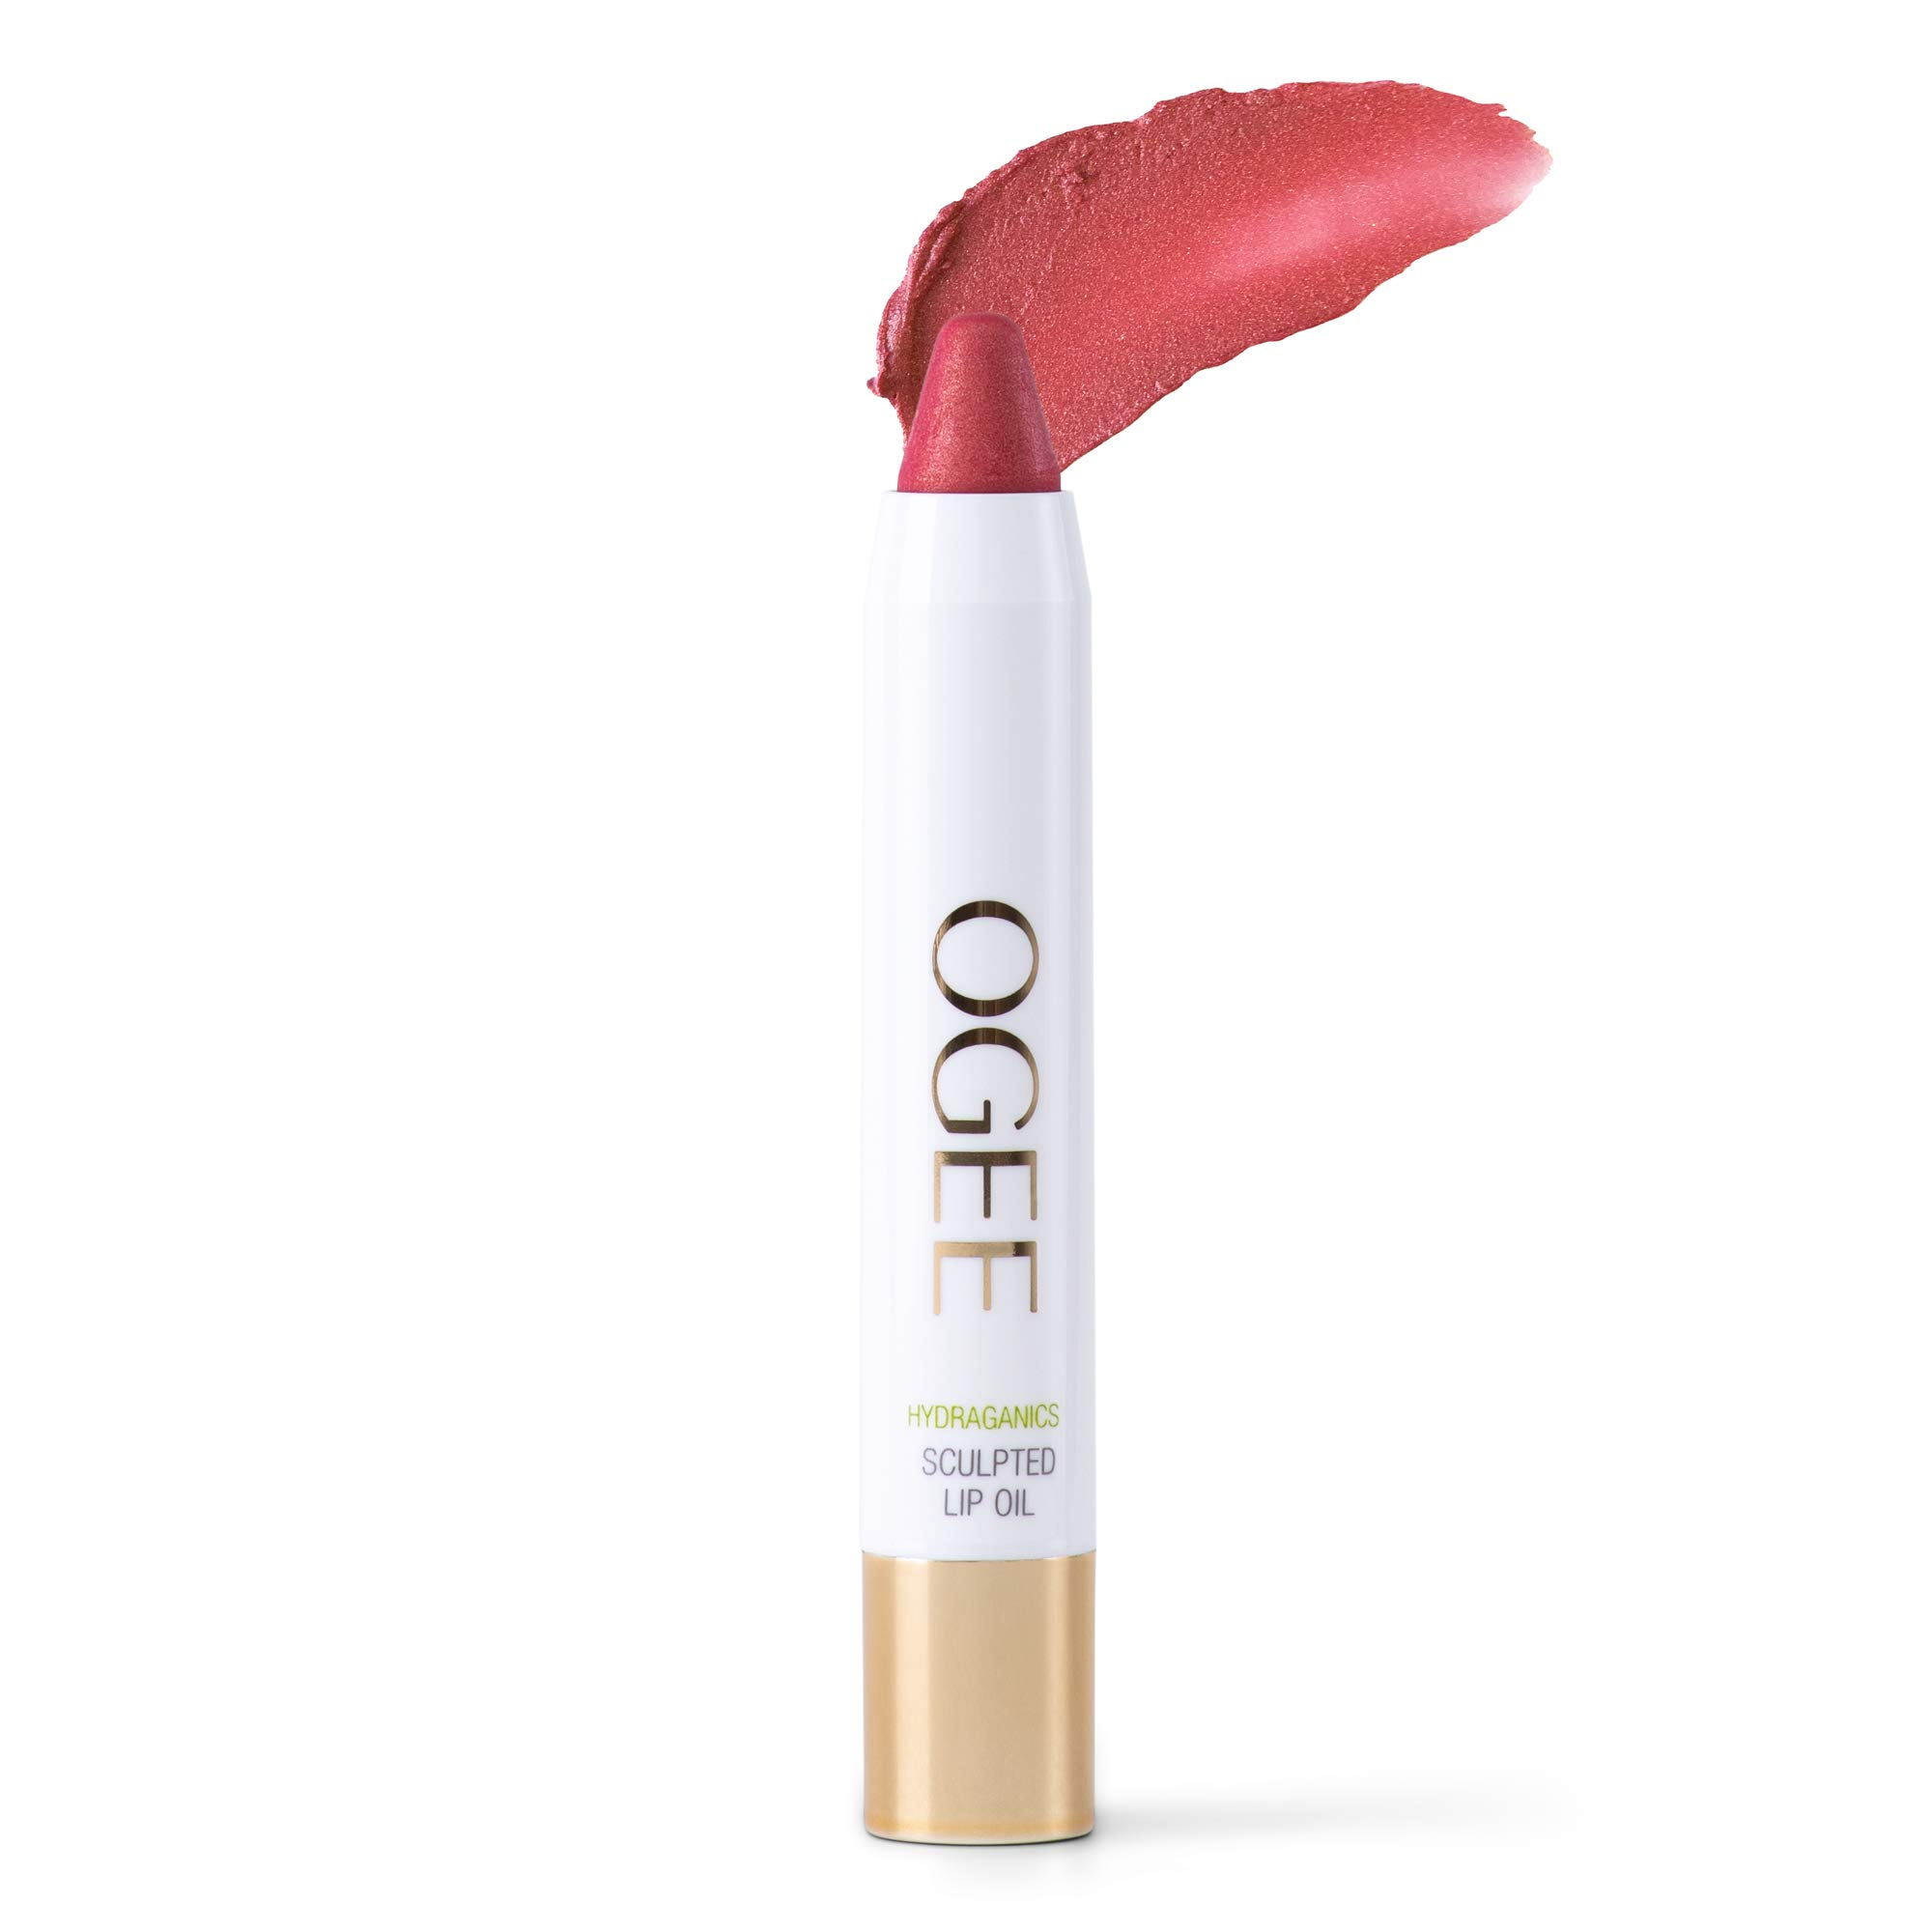 Ogee Tinted Sculpted Lip Oil - Made with 100% Organic Coconut Oil, Jojoba Oil, and Vitamin E - Best as Lip Balm, Lip Color or Lip Treatment - Linnea